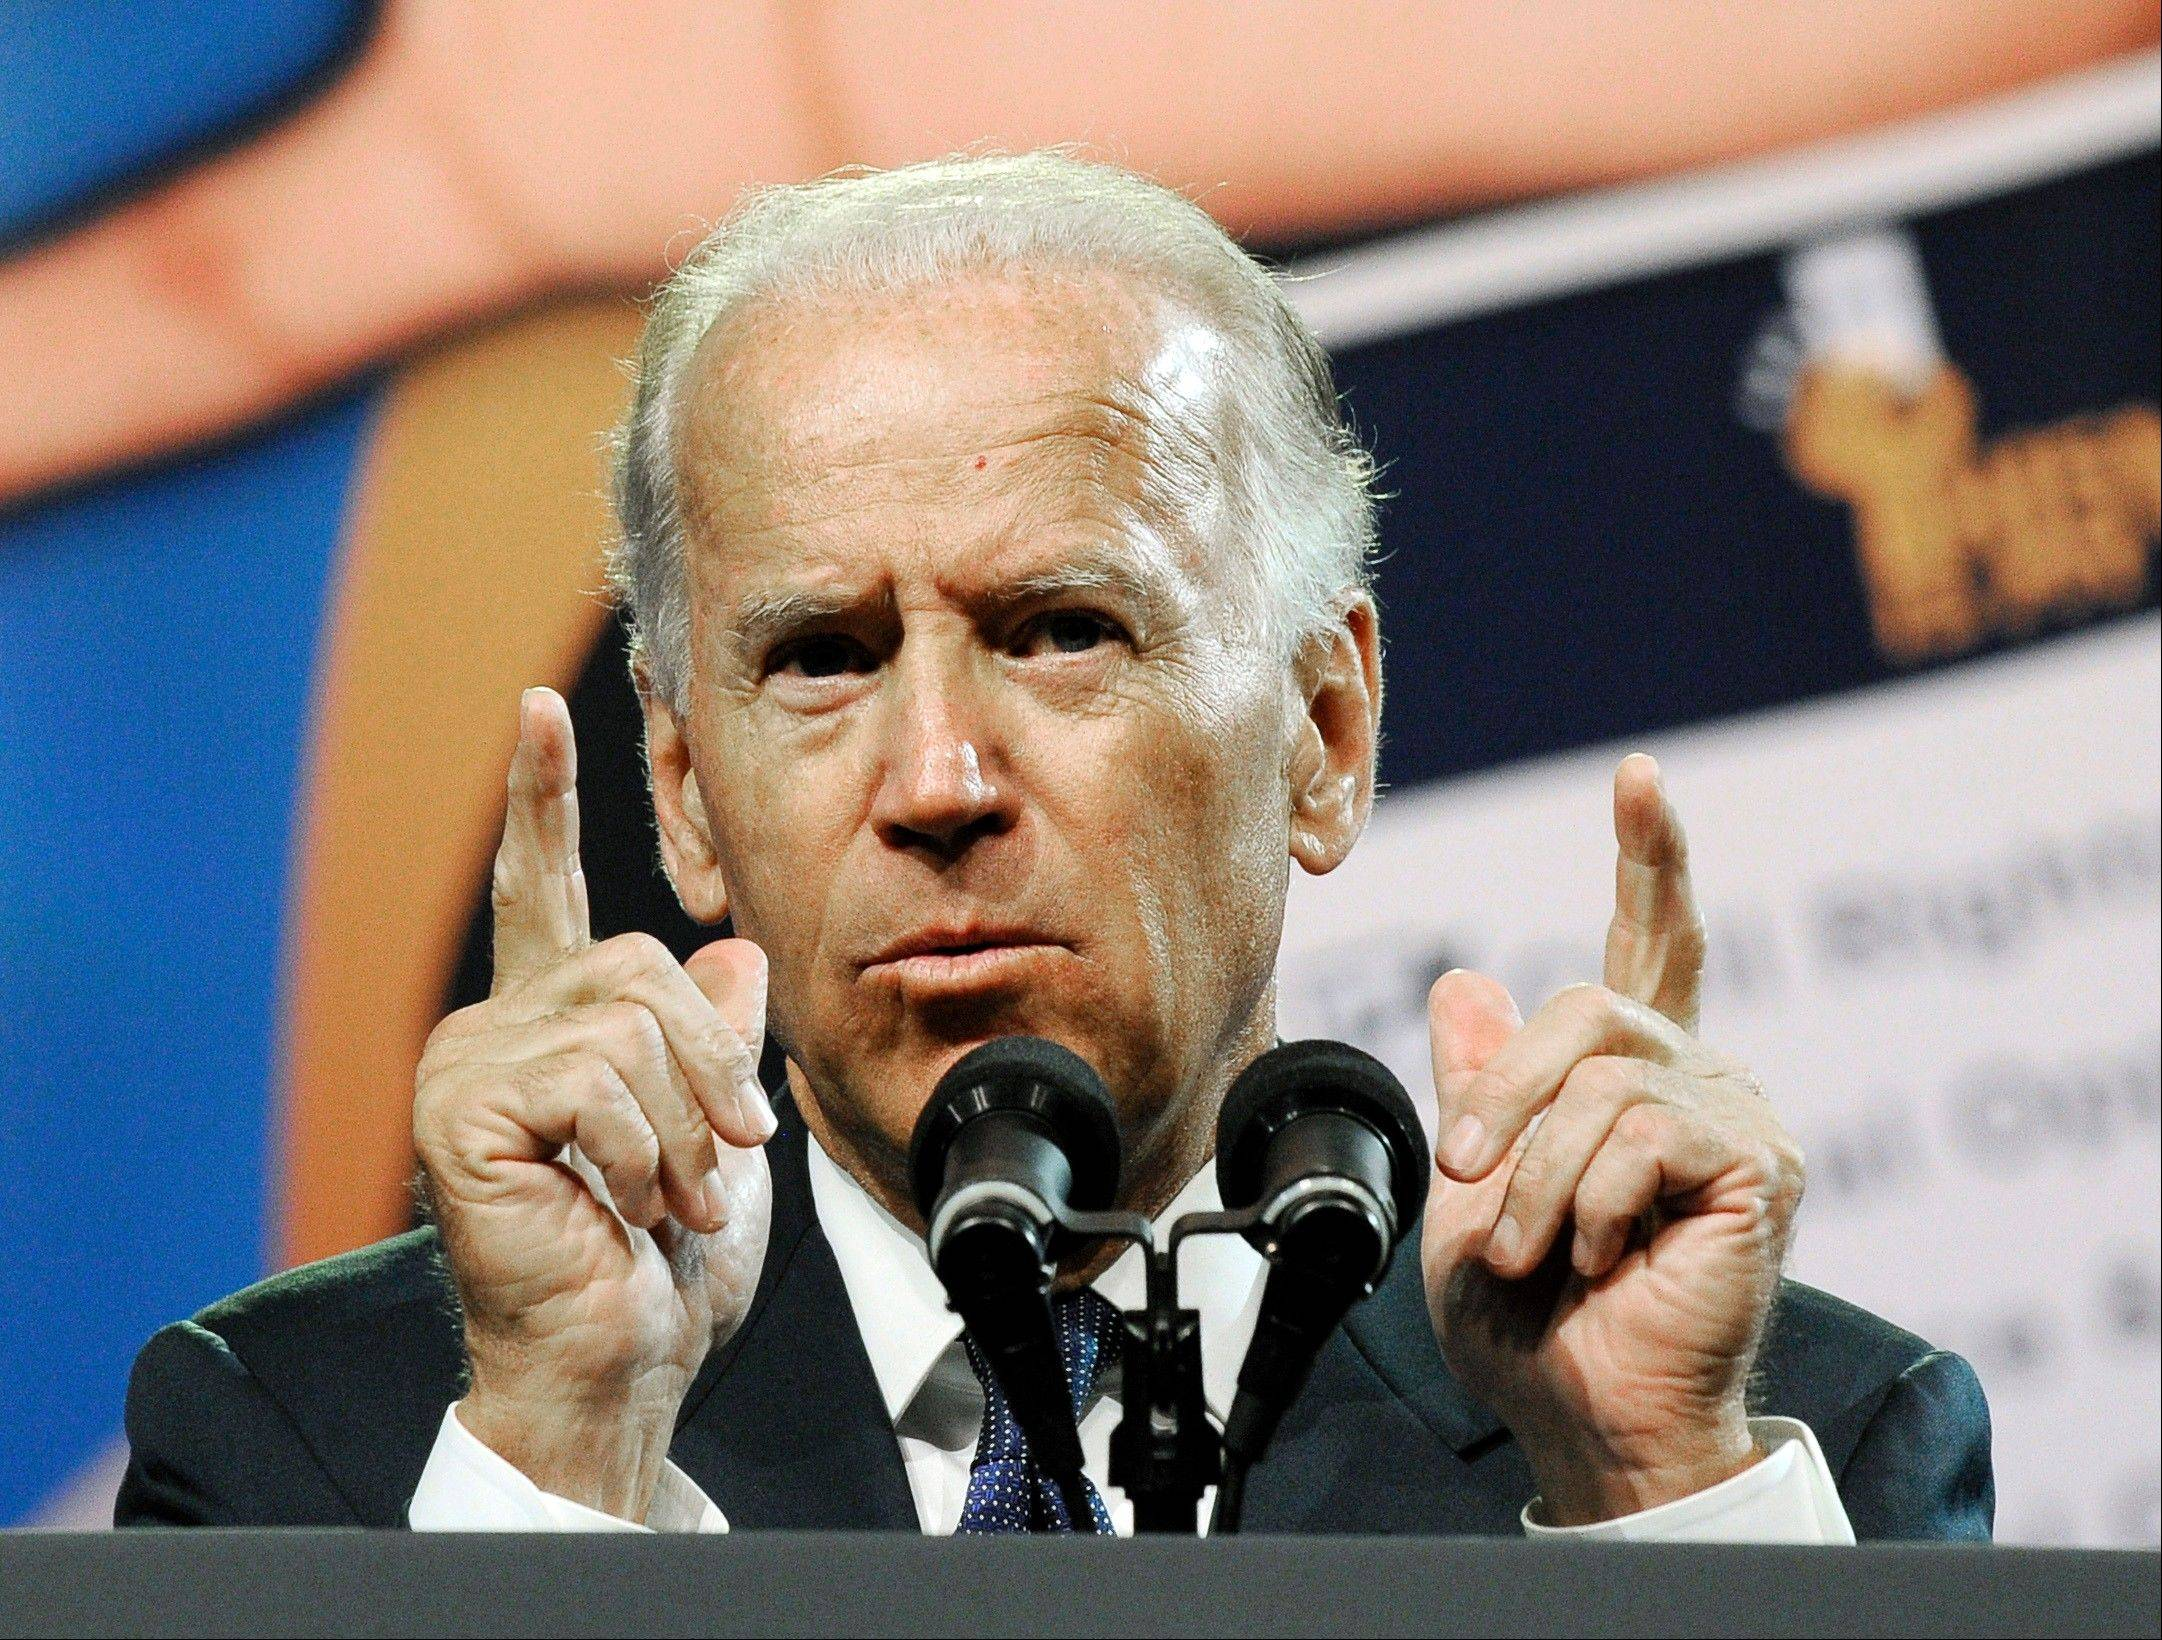 In this July 12, 2012, file photo, Vice President Joe Biden addresses the NAACP annual convention in Houston. In May, after Joe Biden tripped up his boss by voicing support for same-sex marriage while the president remained on the fence, there was speculation about whether the remarks were spontaneous or deliberate. But to those who know Biden, there was no doubt. He was just speaking his mind.